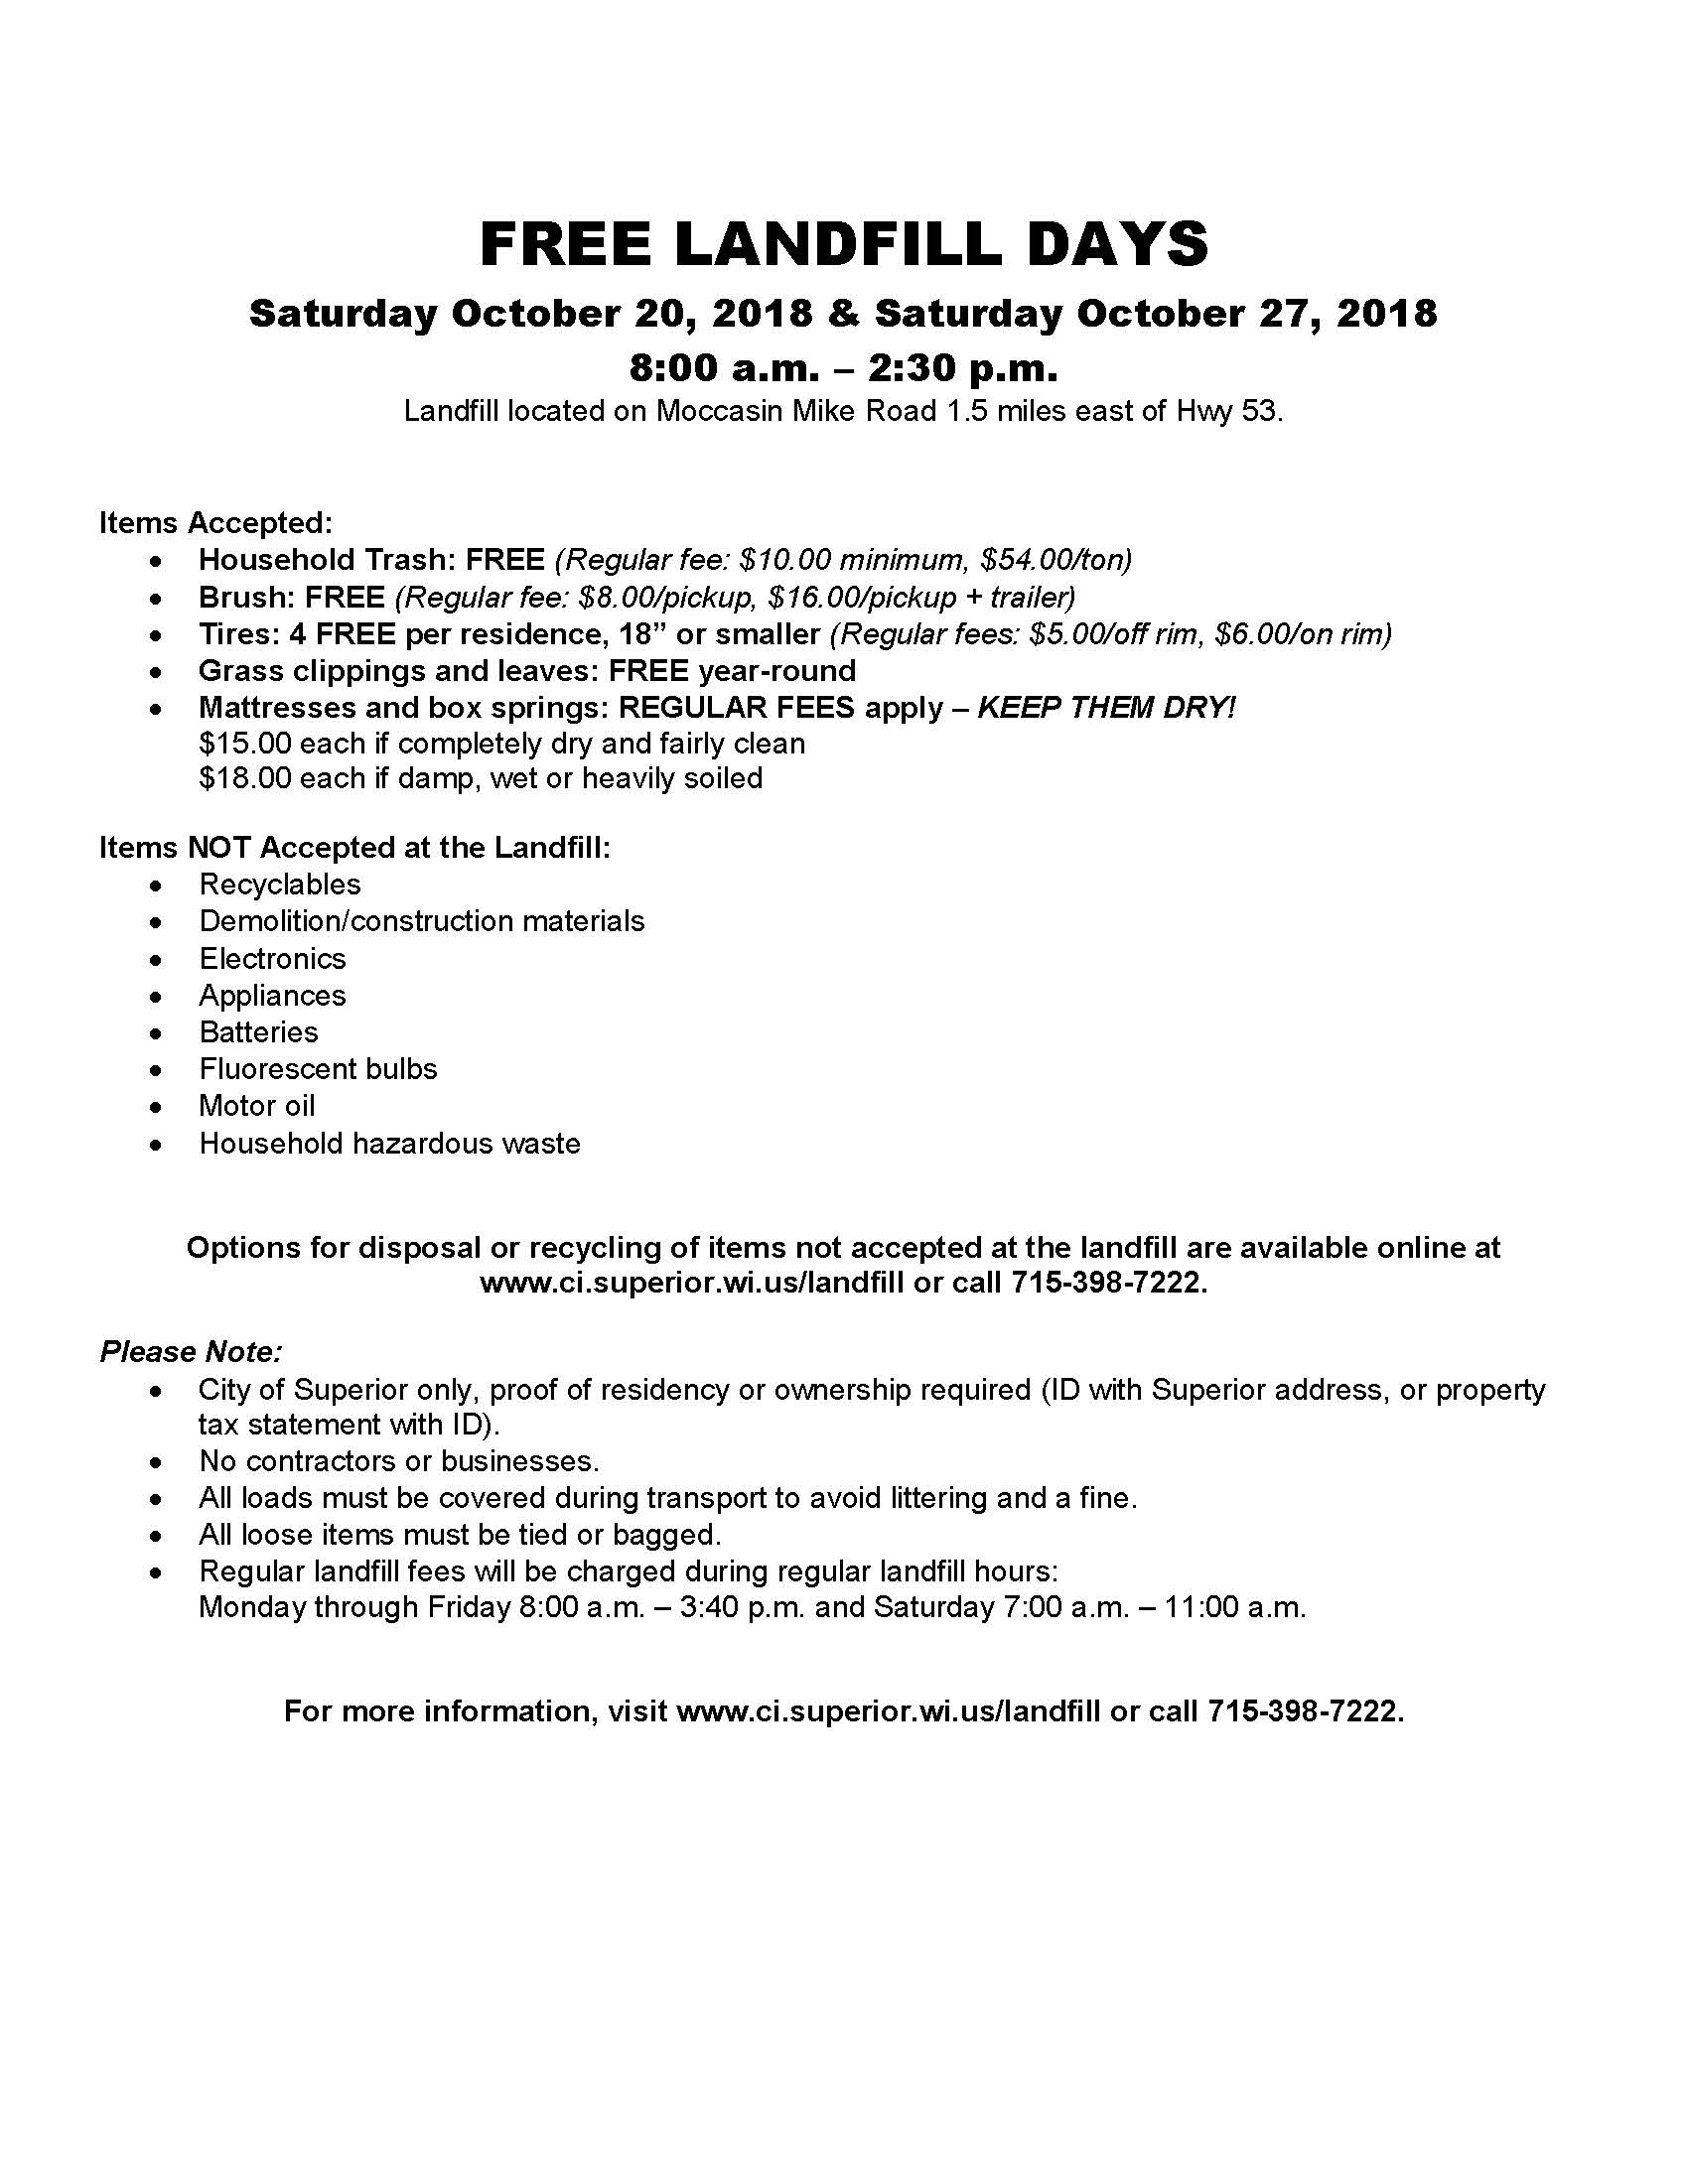 Free Landfill flyer October 2018